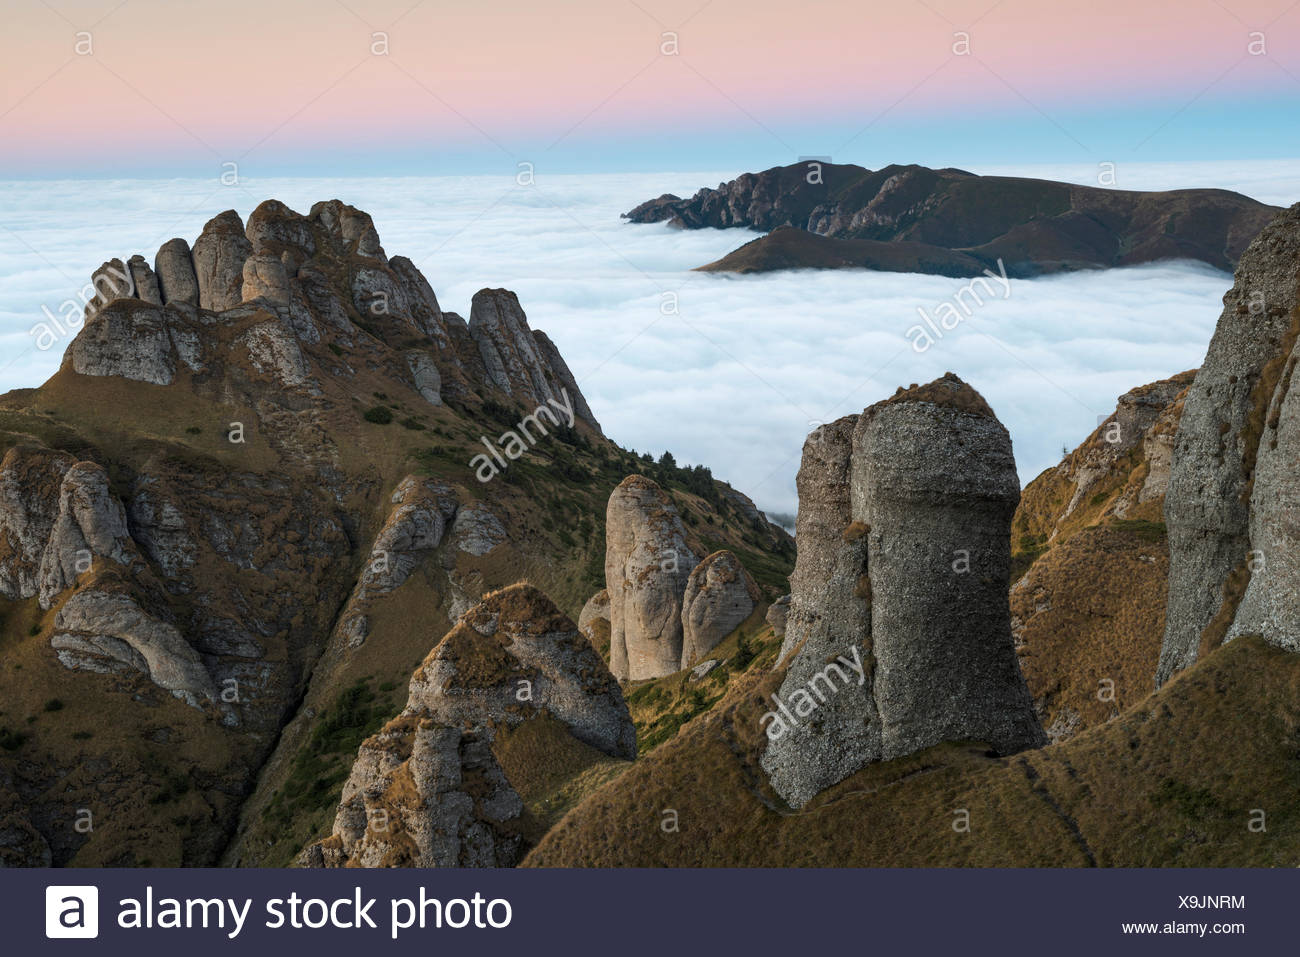 Thick cloud cover rolls to the base of conglomerate rock formations in the Ciucas mountains. - Stock Image